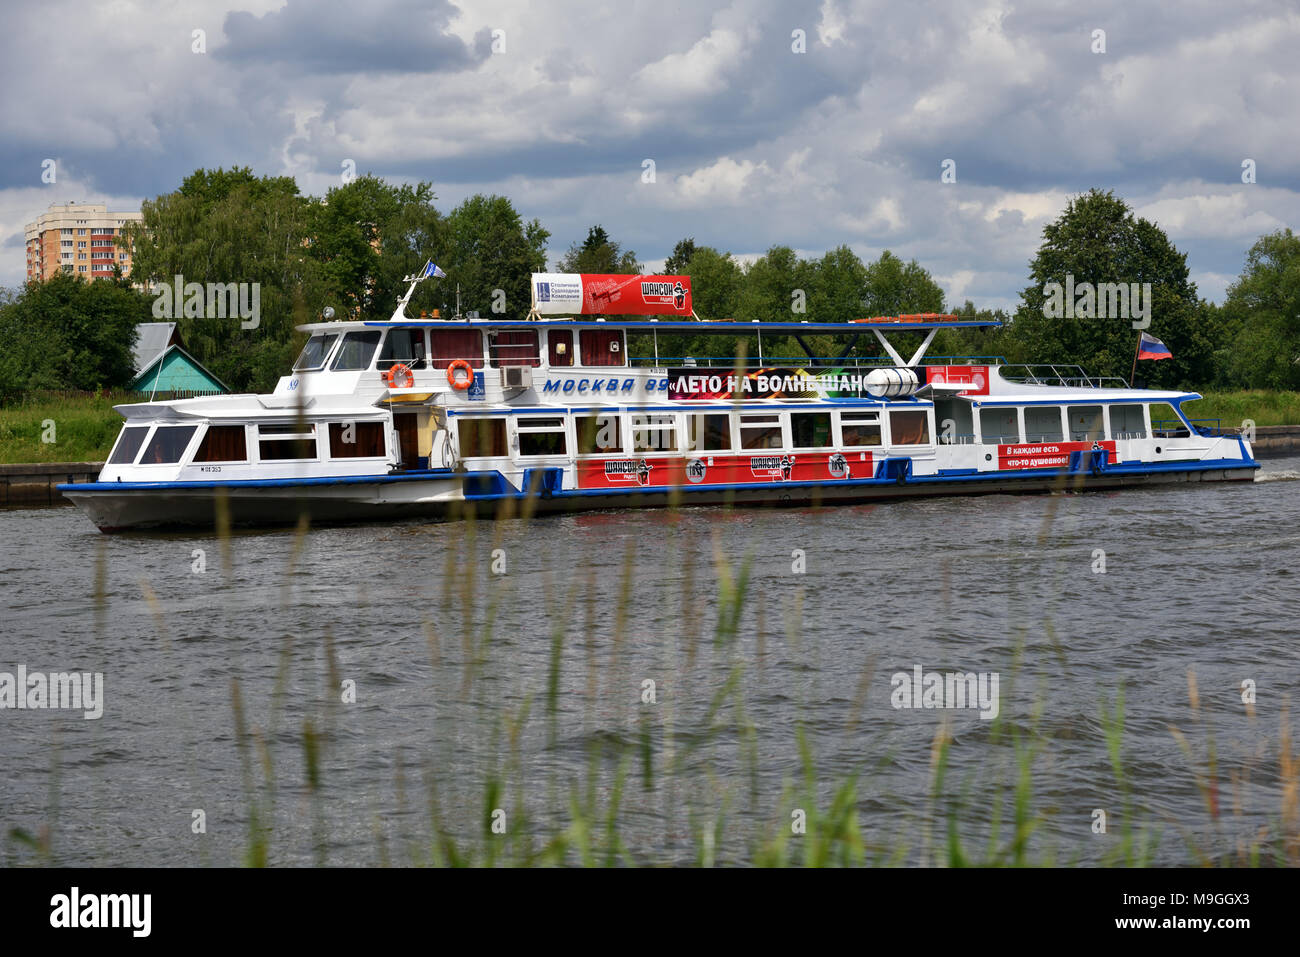 Moscow, Russia - July 4, 2014: Trip boat of the Mostourflot company on the  Moscow canal. The company also offers luxury river cruises to St. Petersbur  Stock Photo - Alamy